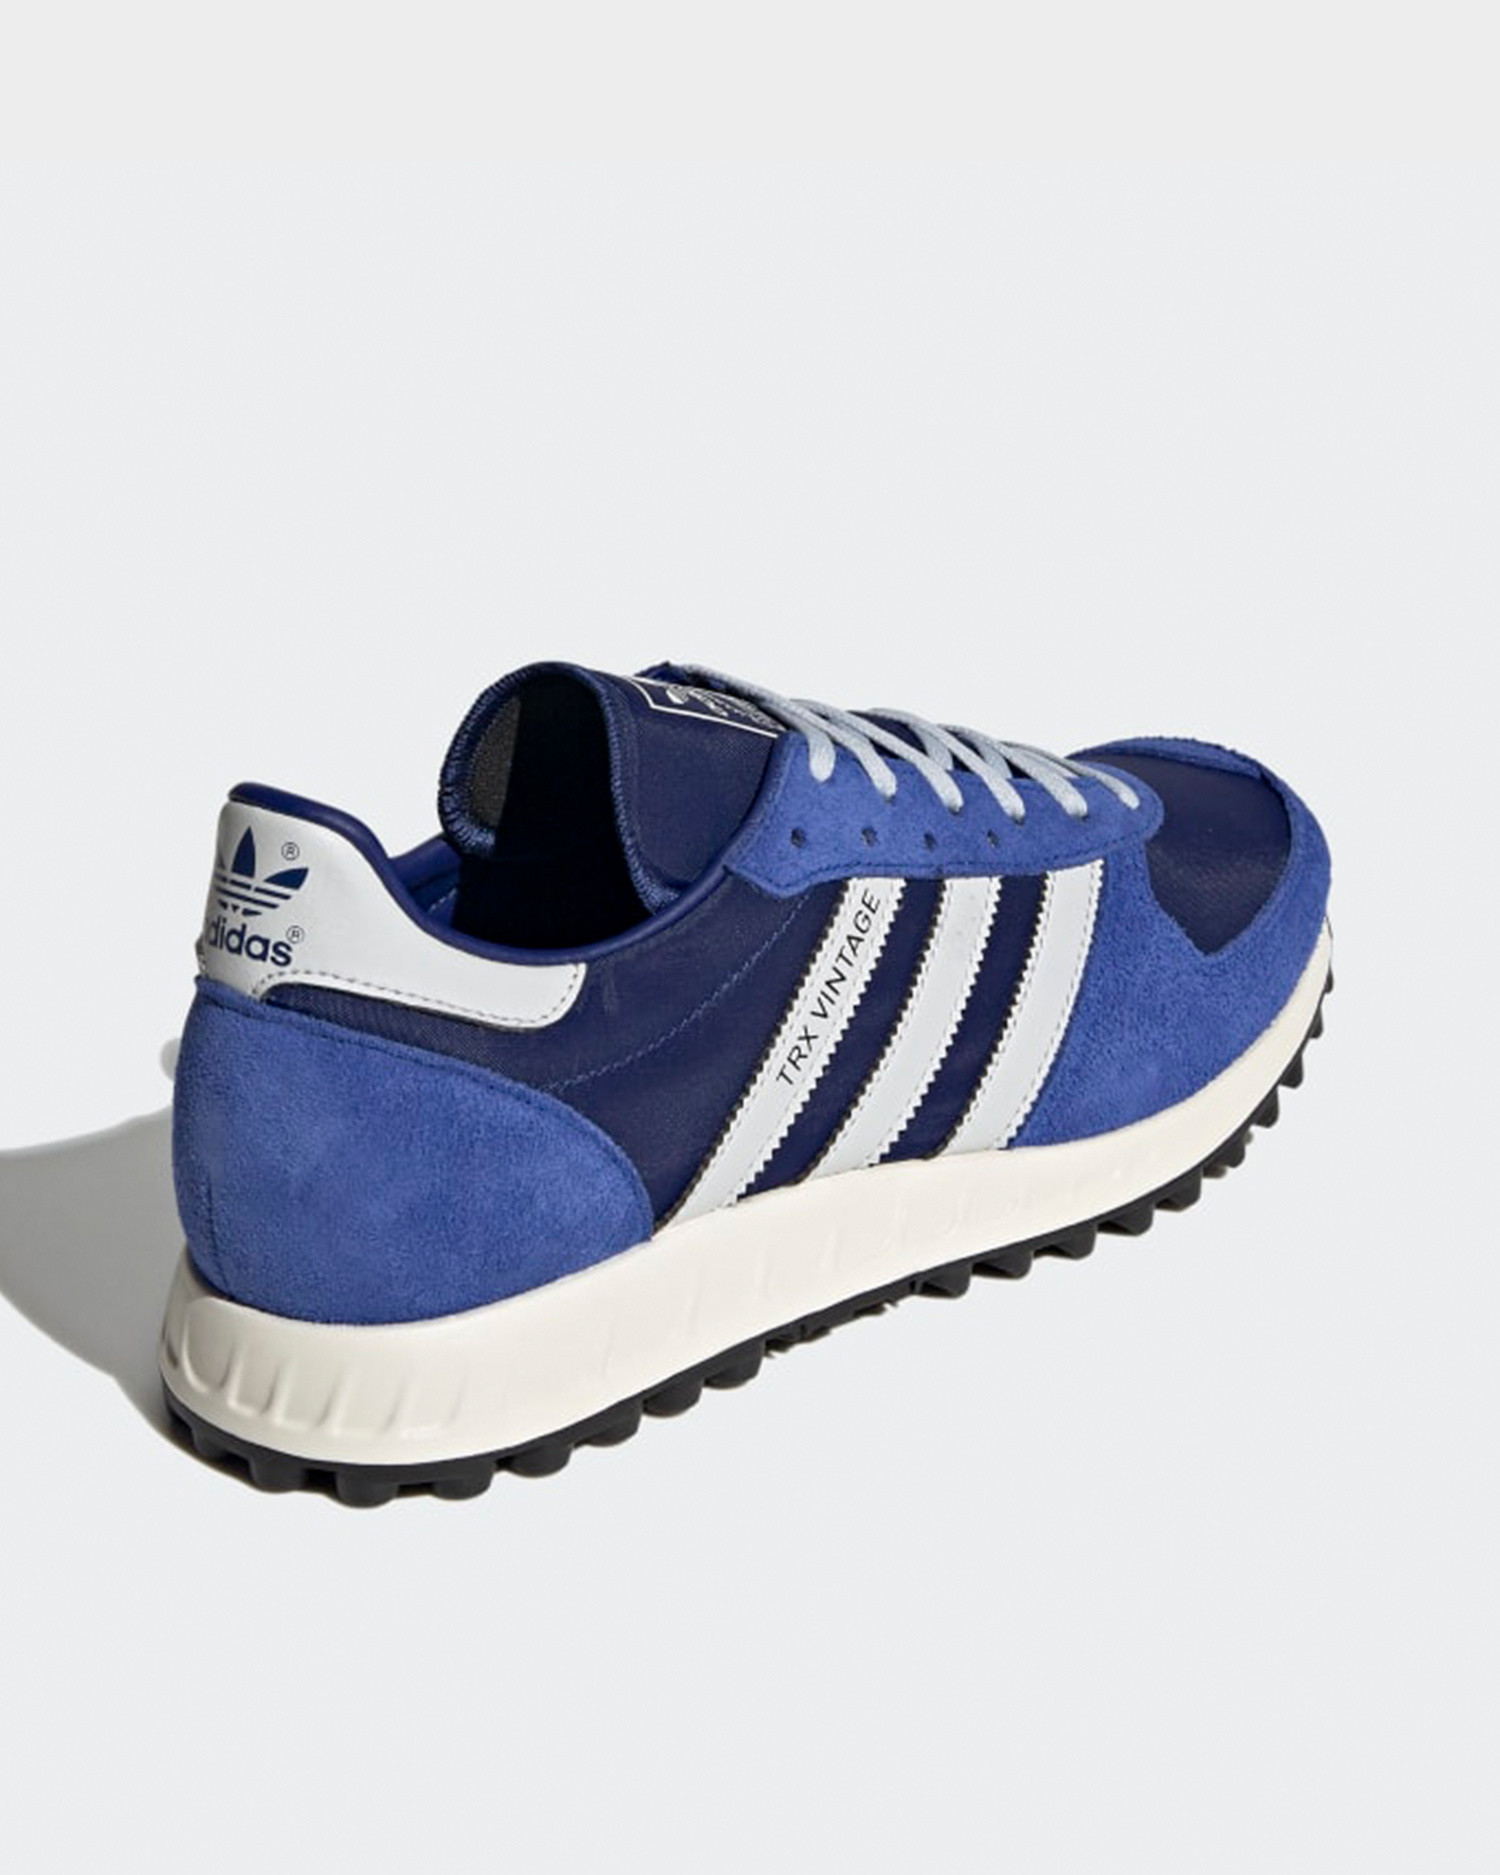 Adidas TRX Vintage Cwhite/Clgrey/Magold